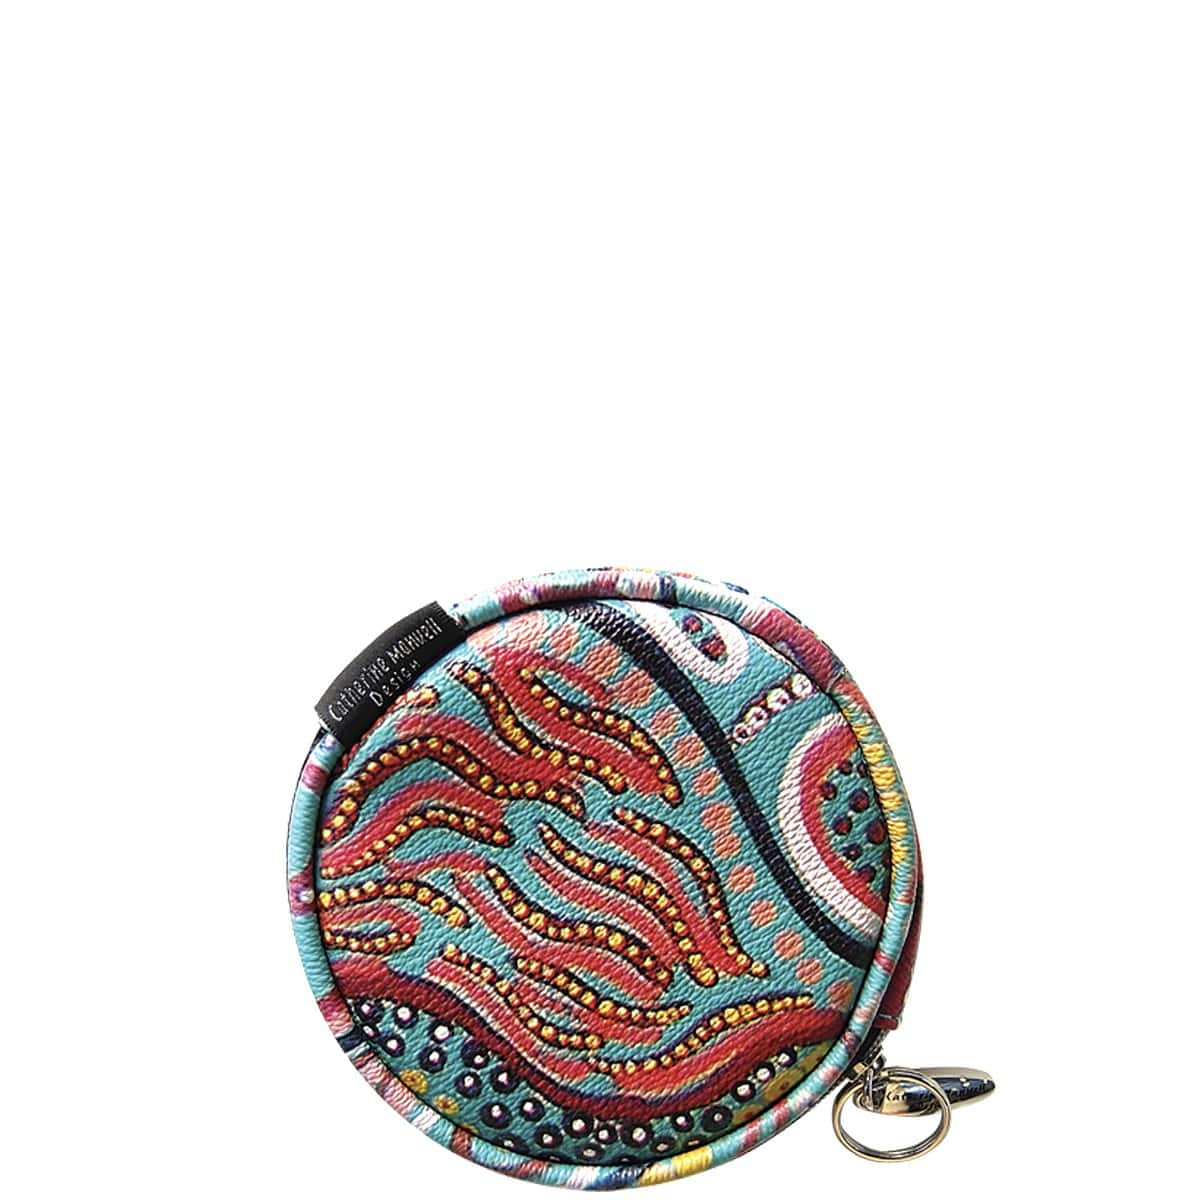 Full Moon Coin Purse AAP - Putipula